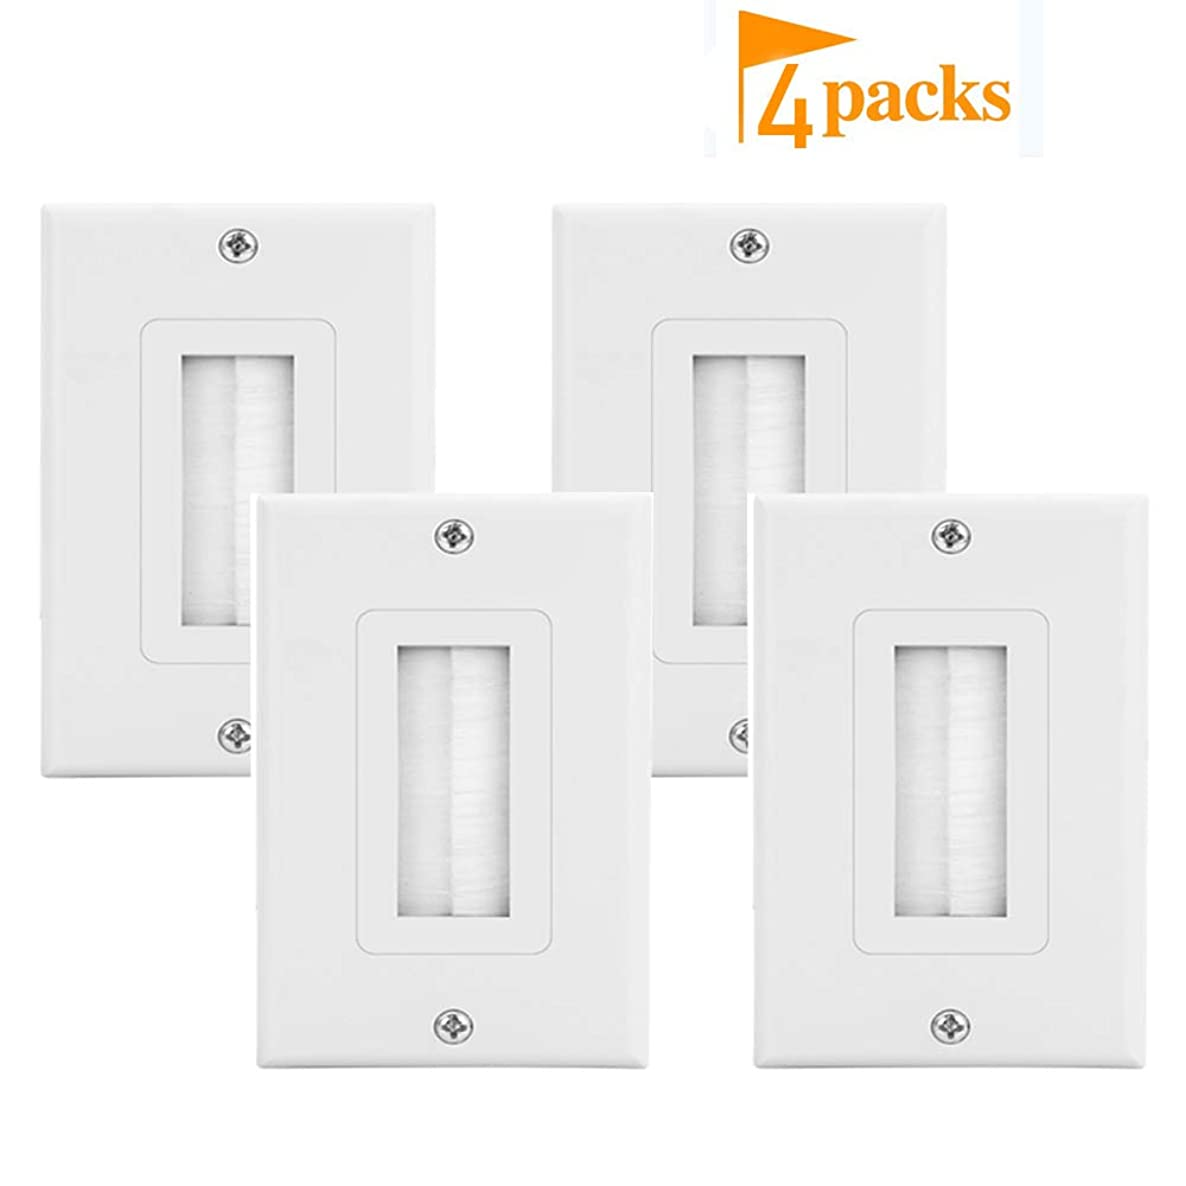 Brush Wall Plate Decora Style Cable Pass Through Insert fWall Plate Cable Pass Through Insert for Wires,Single Gang Decorative Style Cable Wall Plate Port,Works with AV,HDMI,Home Theater,White (4pack)